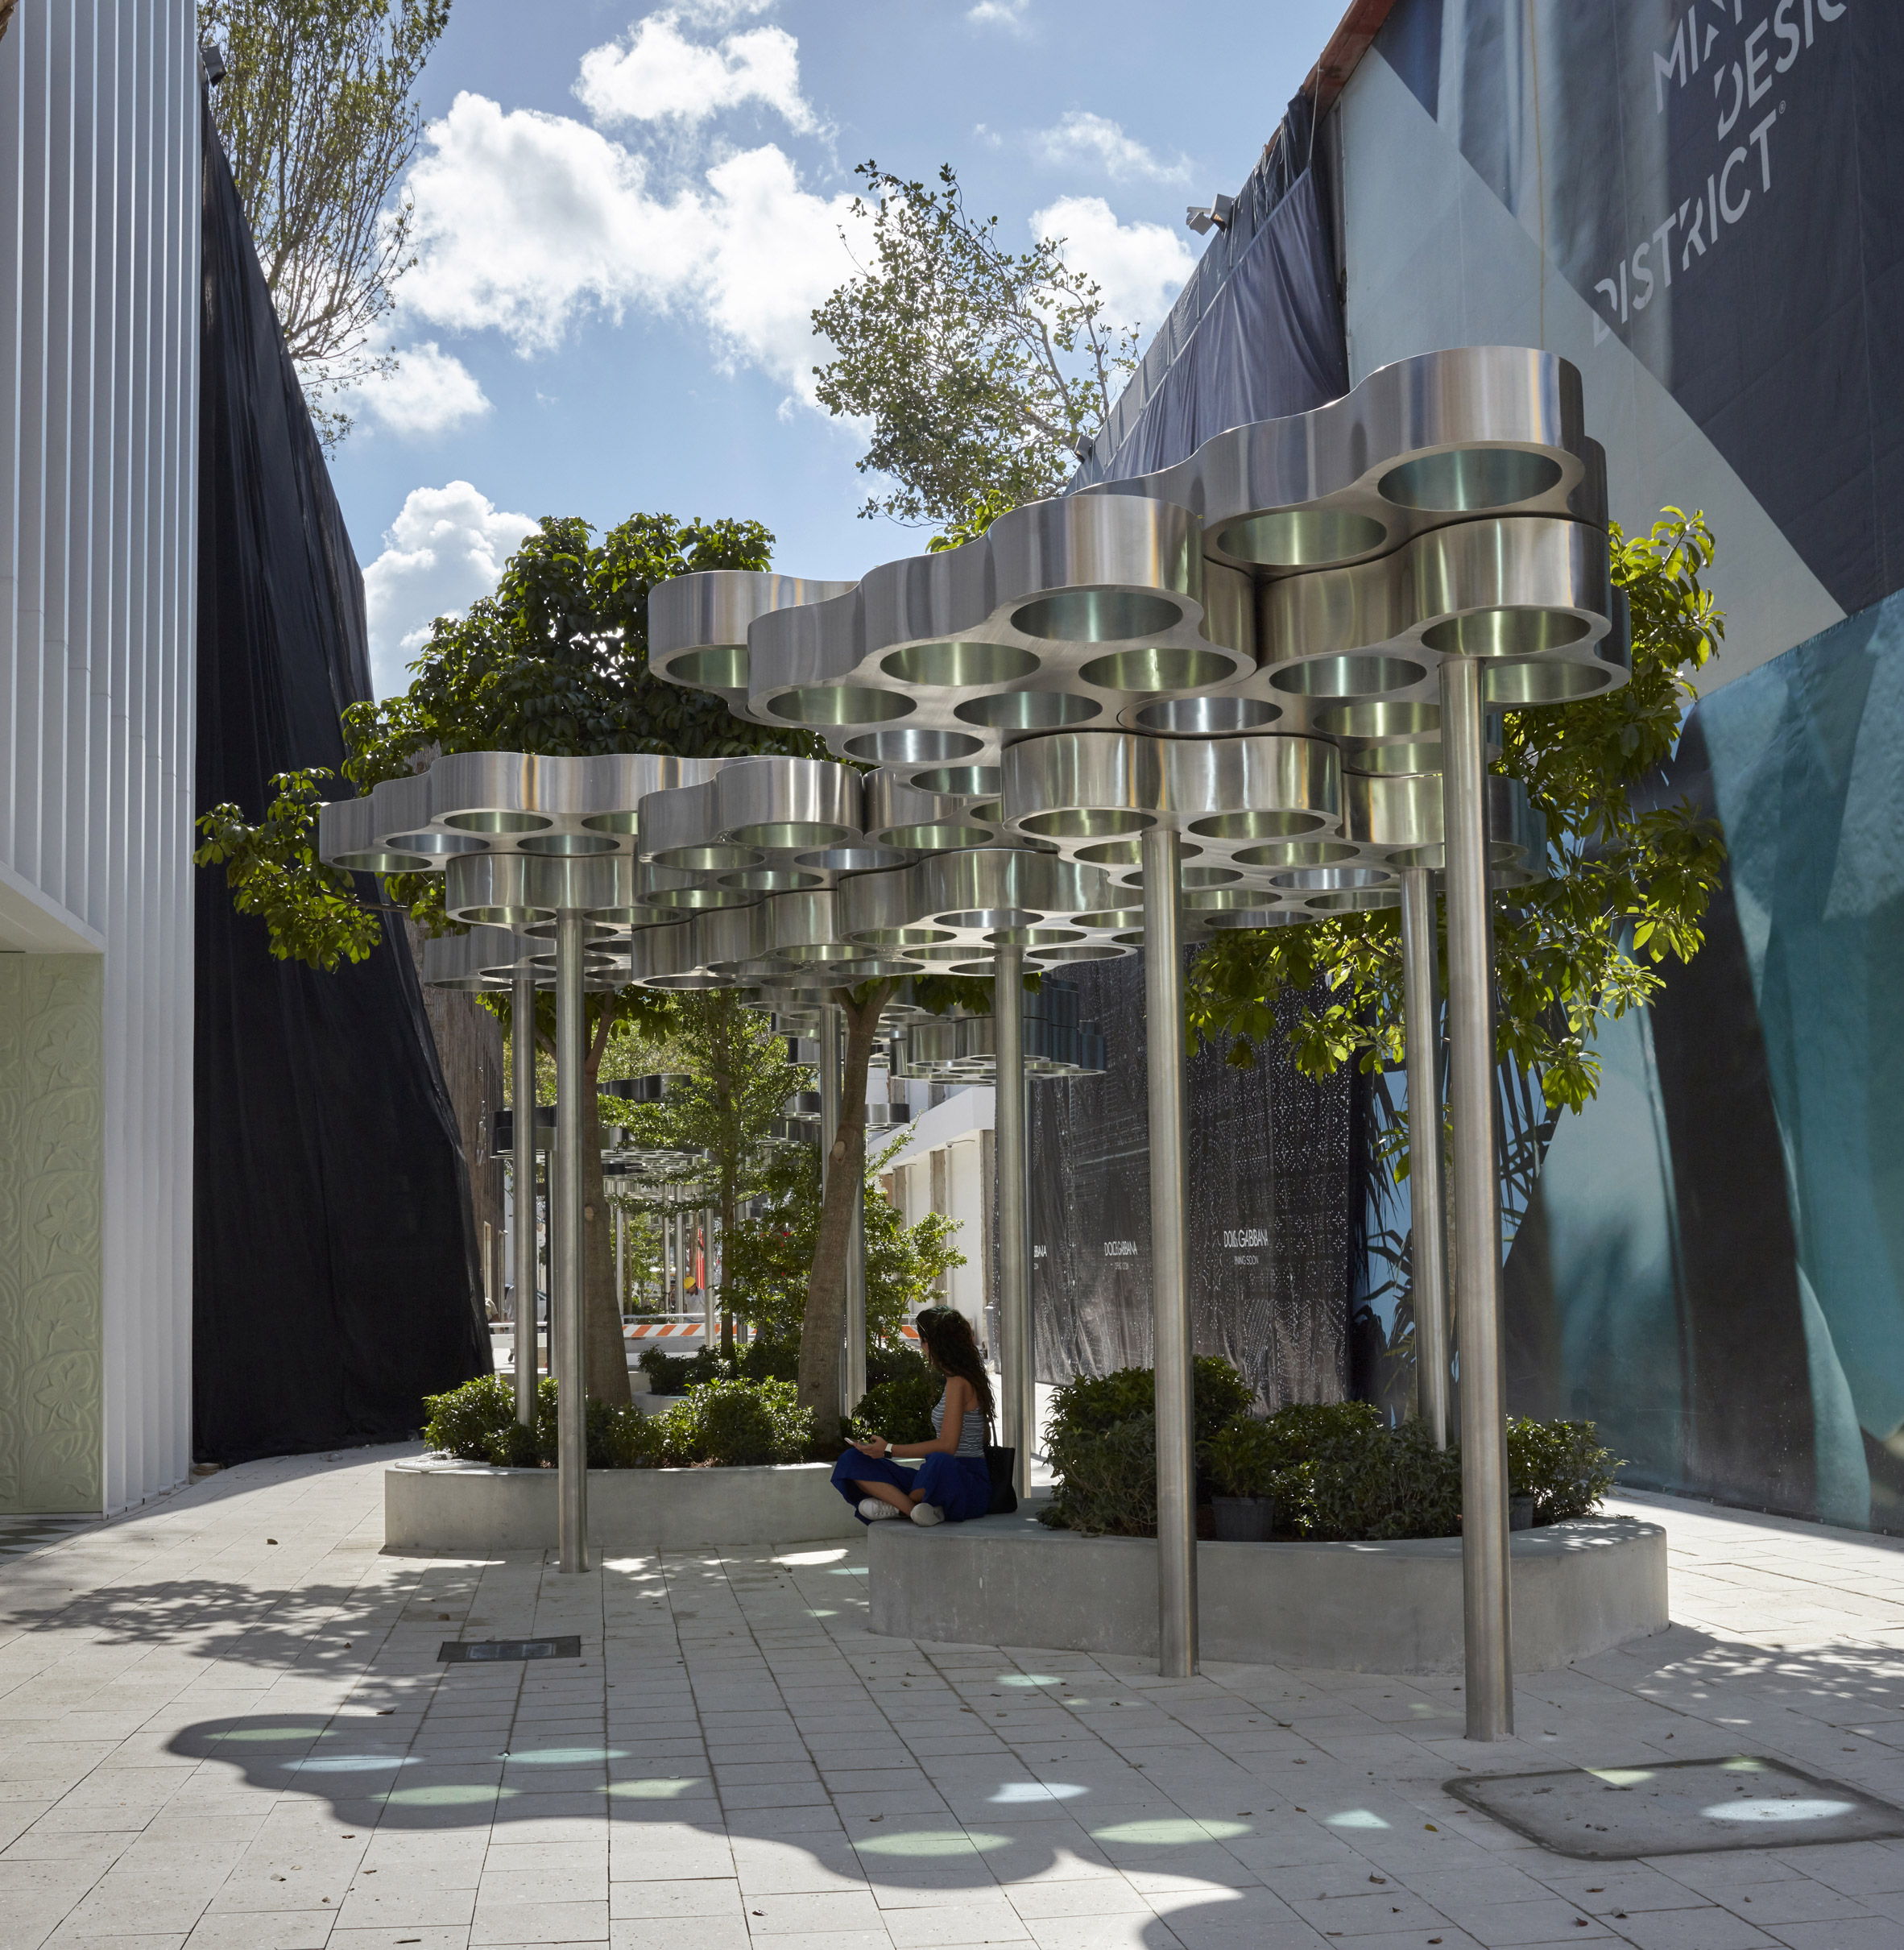 DnA plants chinese herbal garden to provide space within densely populated neighborhood